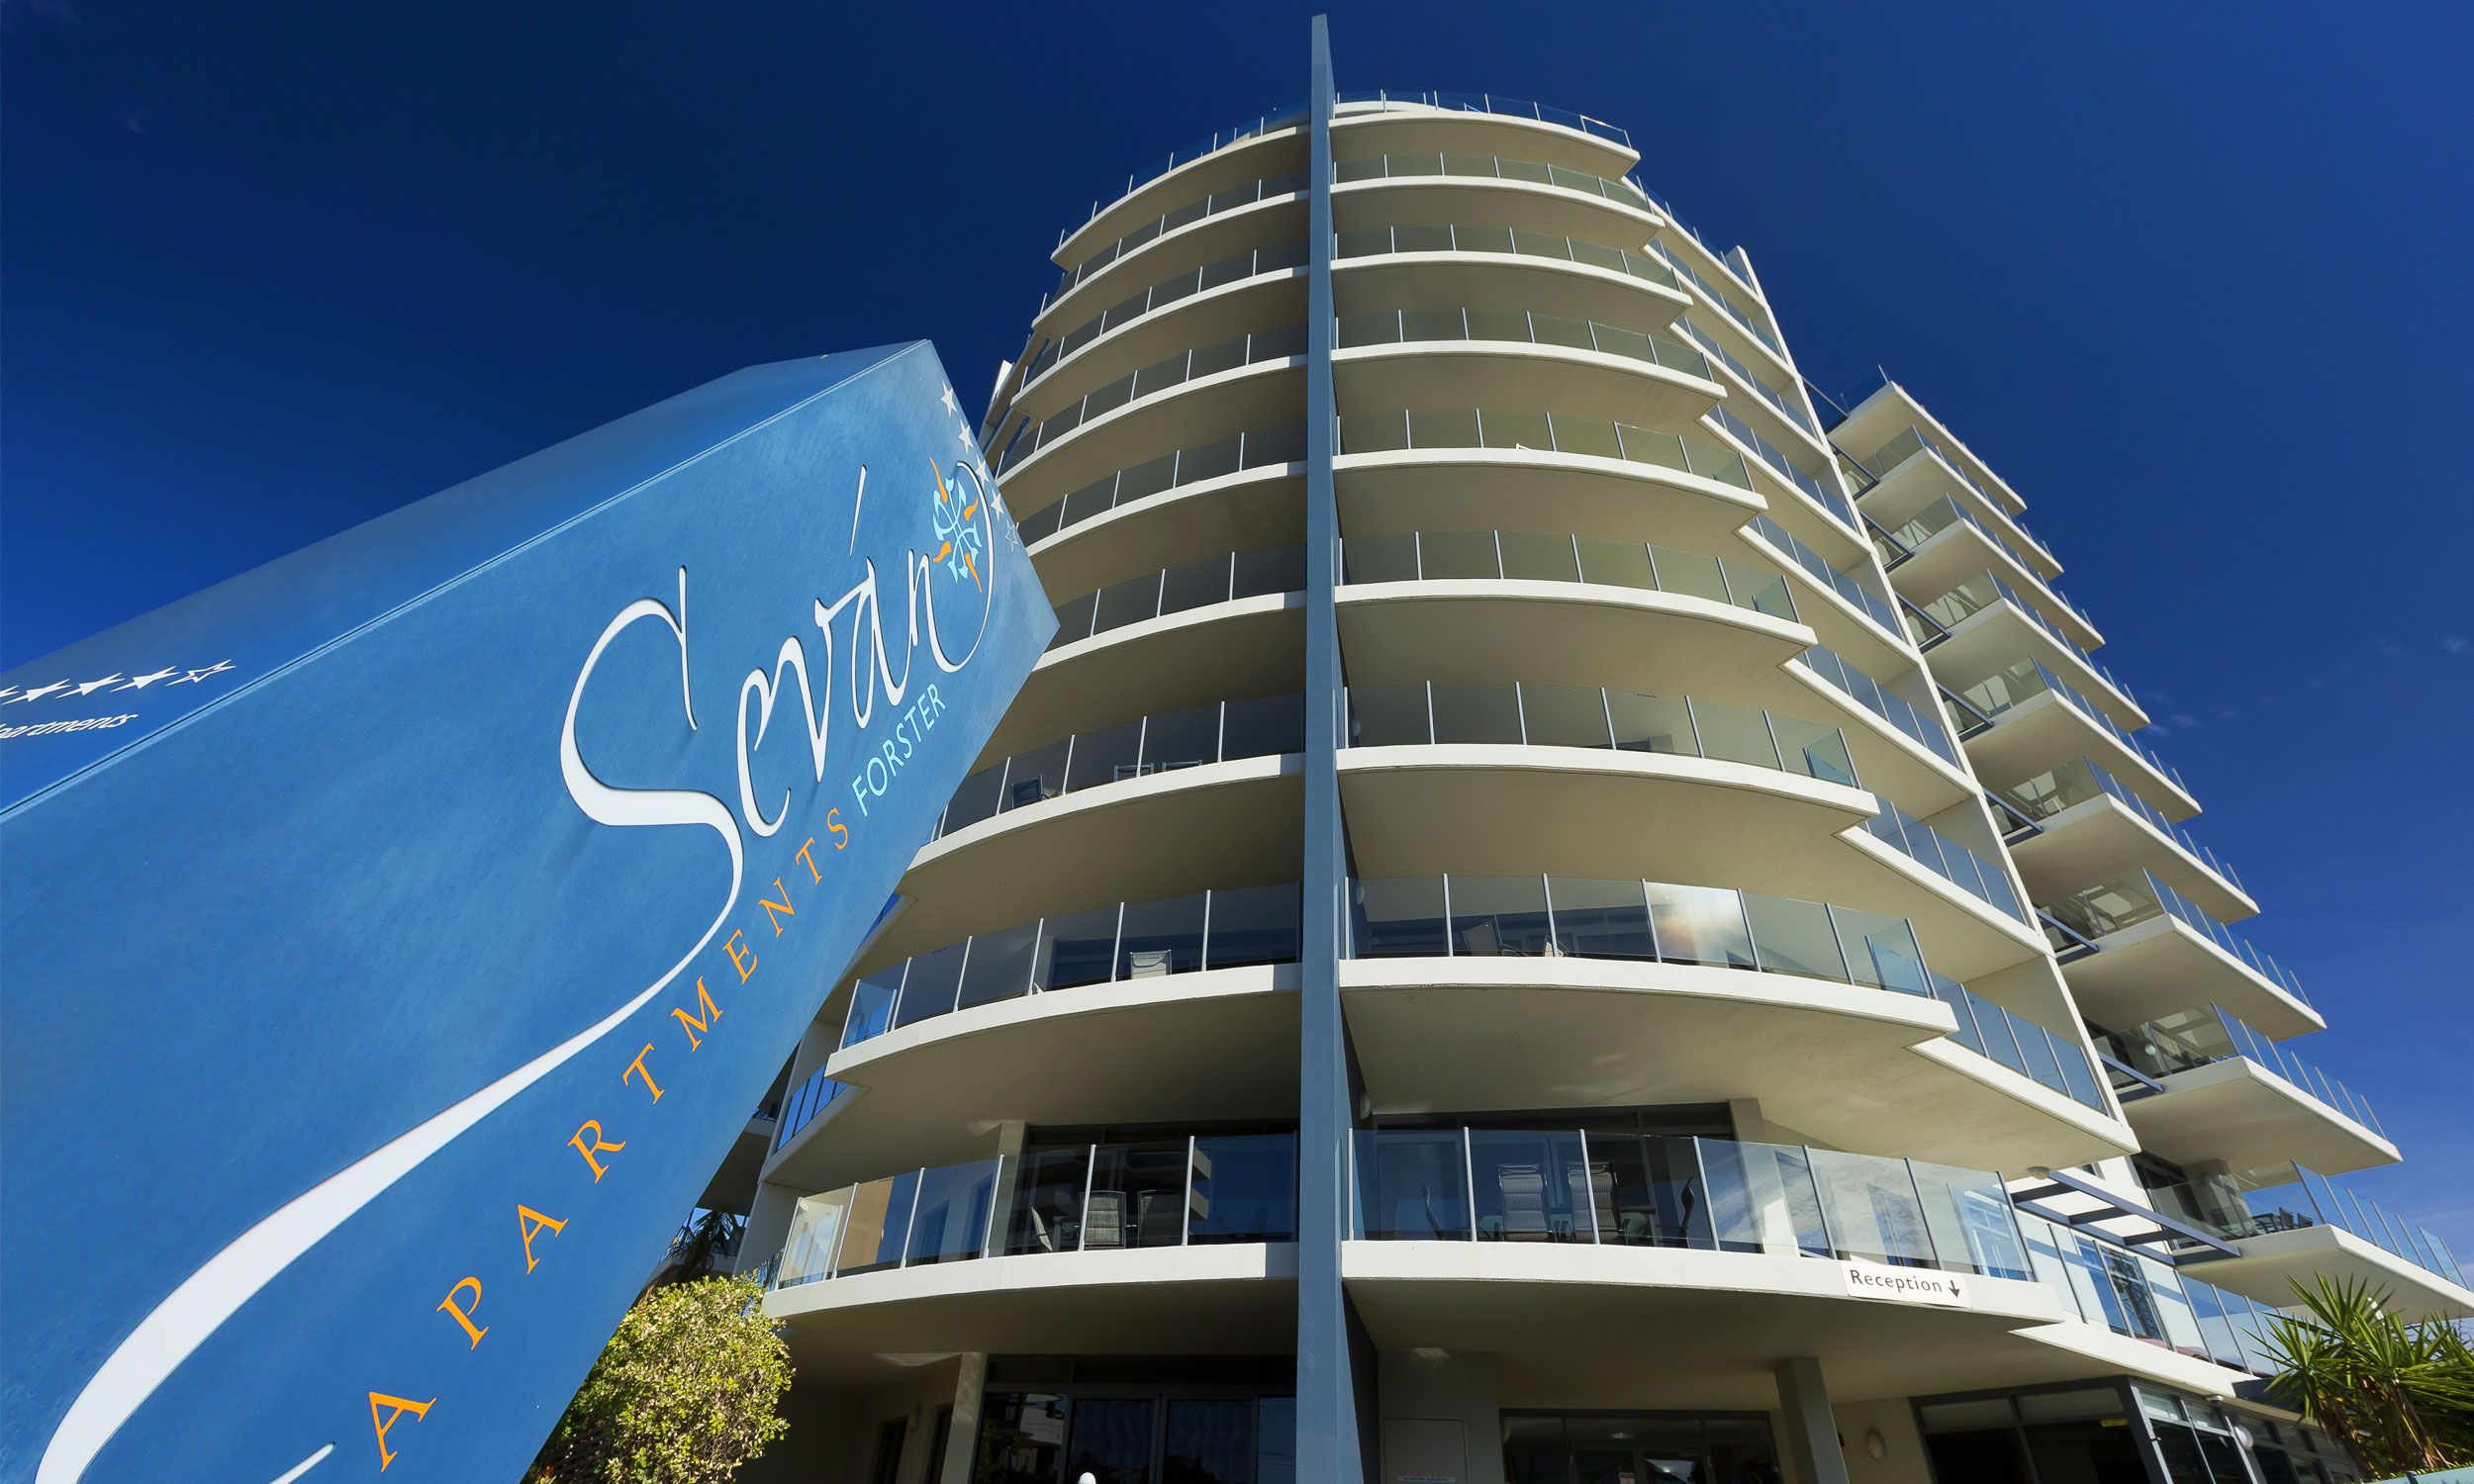 sevan-apartments-forster-nsw.jpg